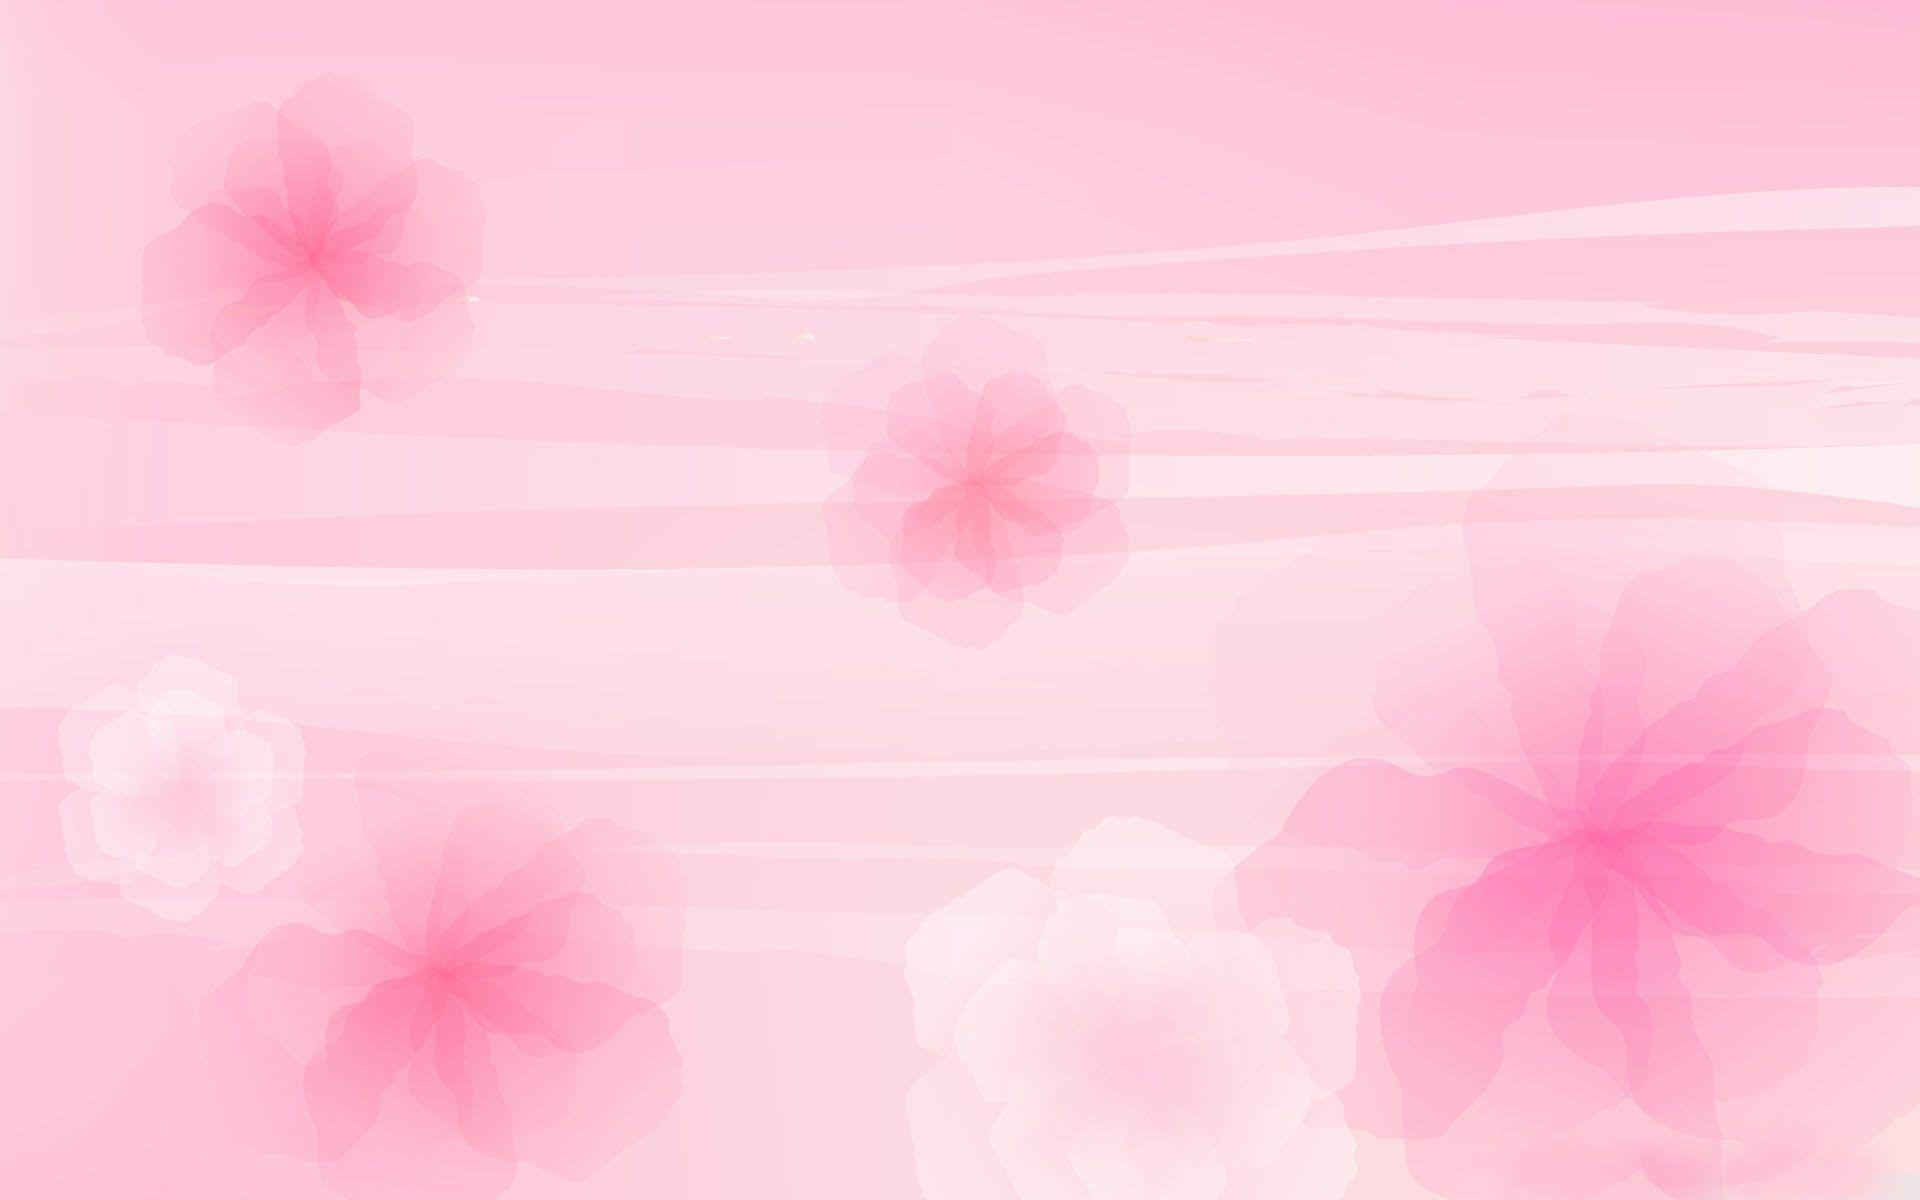 Light Pink Flower Wallpapers 1920x1200